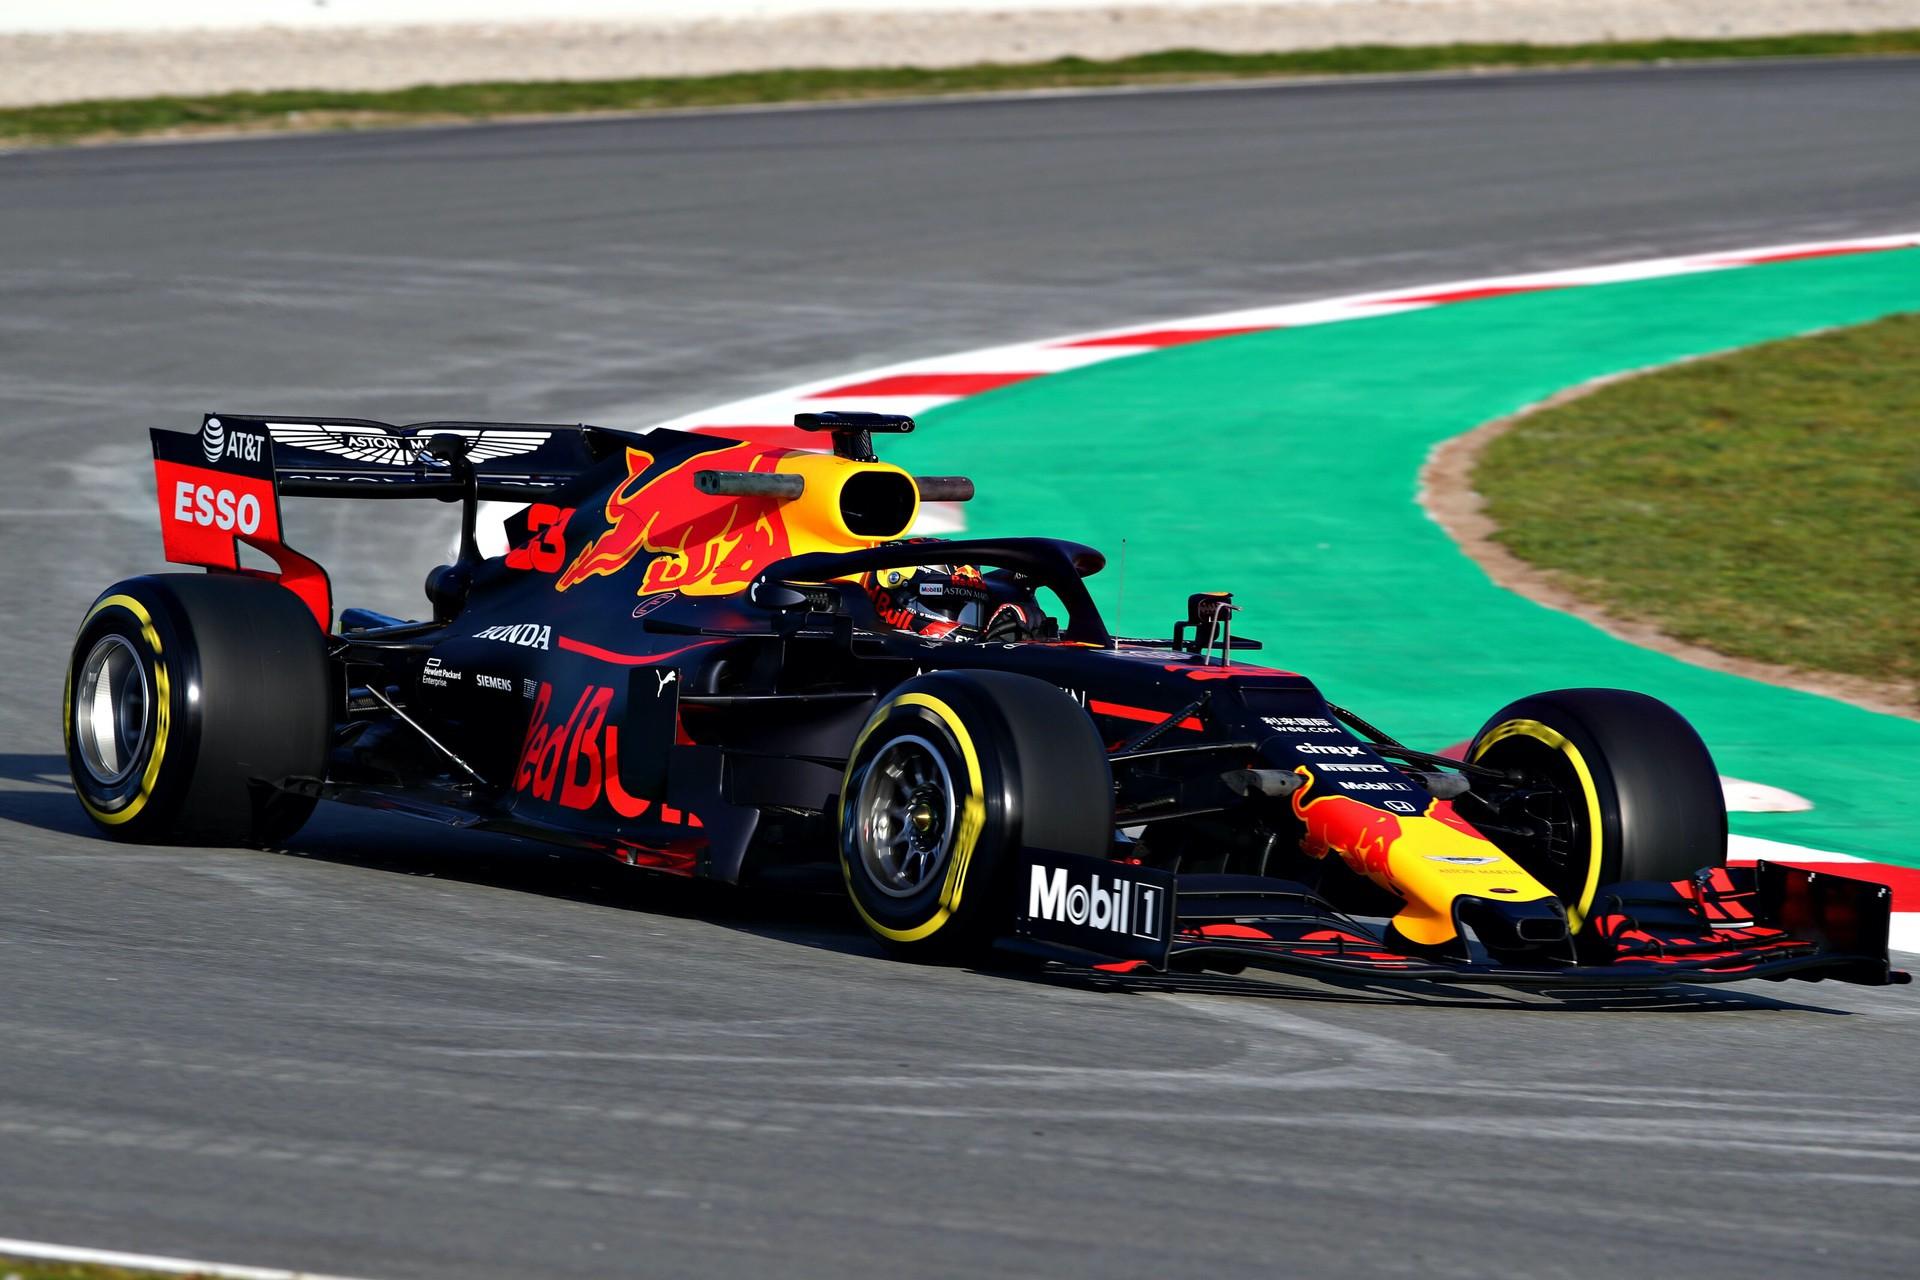 MONTMELO, SPAIN - FEBRUARY 18: Max Verstappen of the Netherlands driving the (33) Aston Martin Red Bull Racing RB15 on track during day one of F1 Winter Testing at Circuit de Catalunya on February 18, 2019 in Montmelo, Spain. (Photo by Dan Istitene/Getty Images) // Getty Images / Red Bull Content Pool  // AP-1YFQGD5ZW1W11 // Usage for editorial use only // Please go to www.redbullcontentpool.com for further information. //